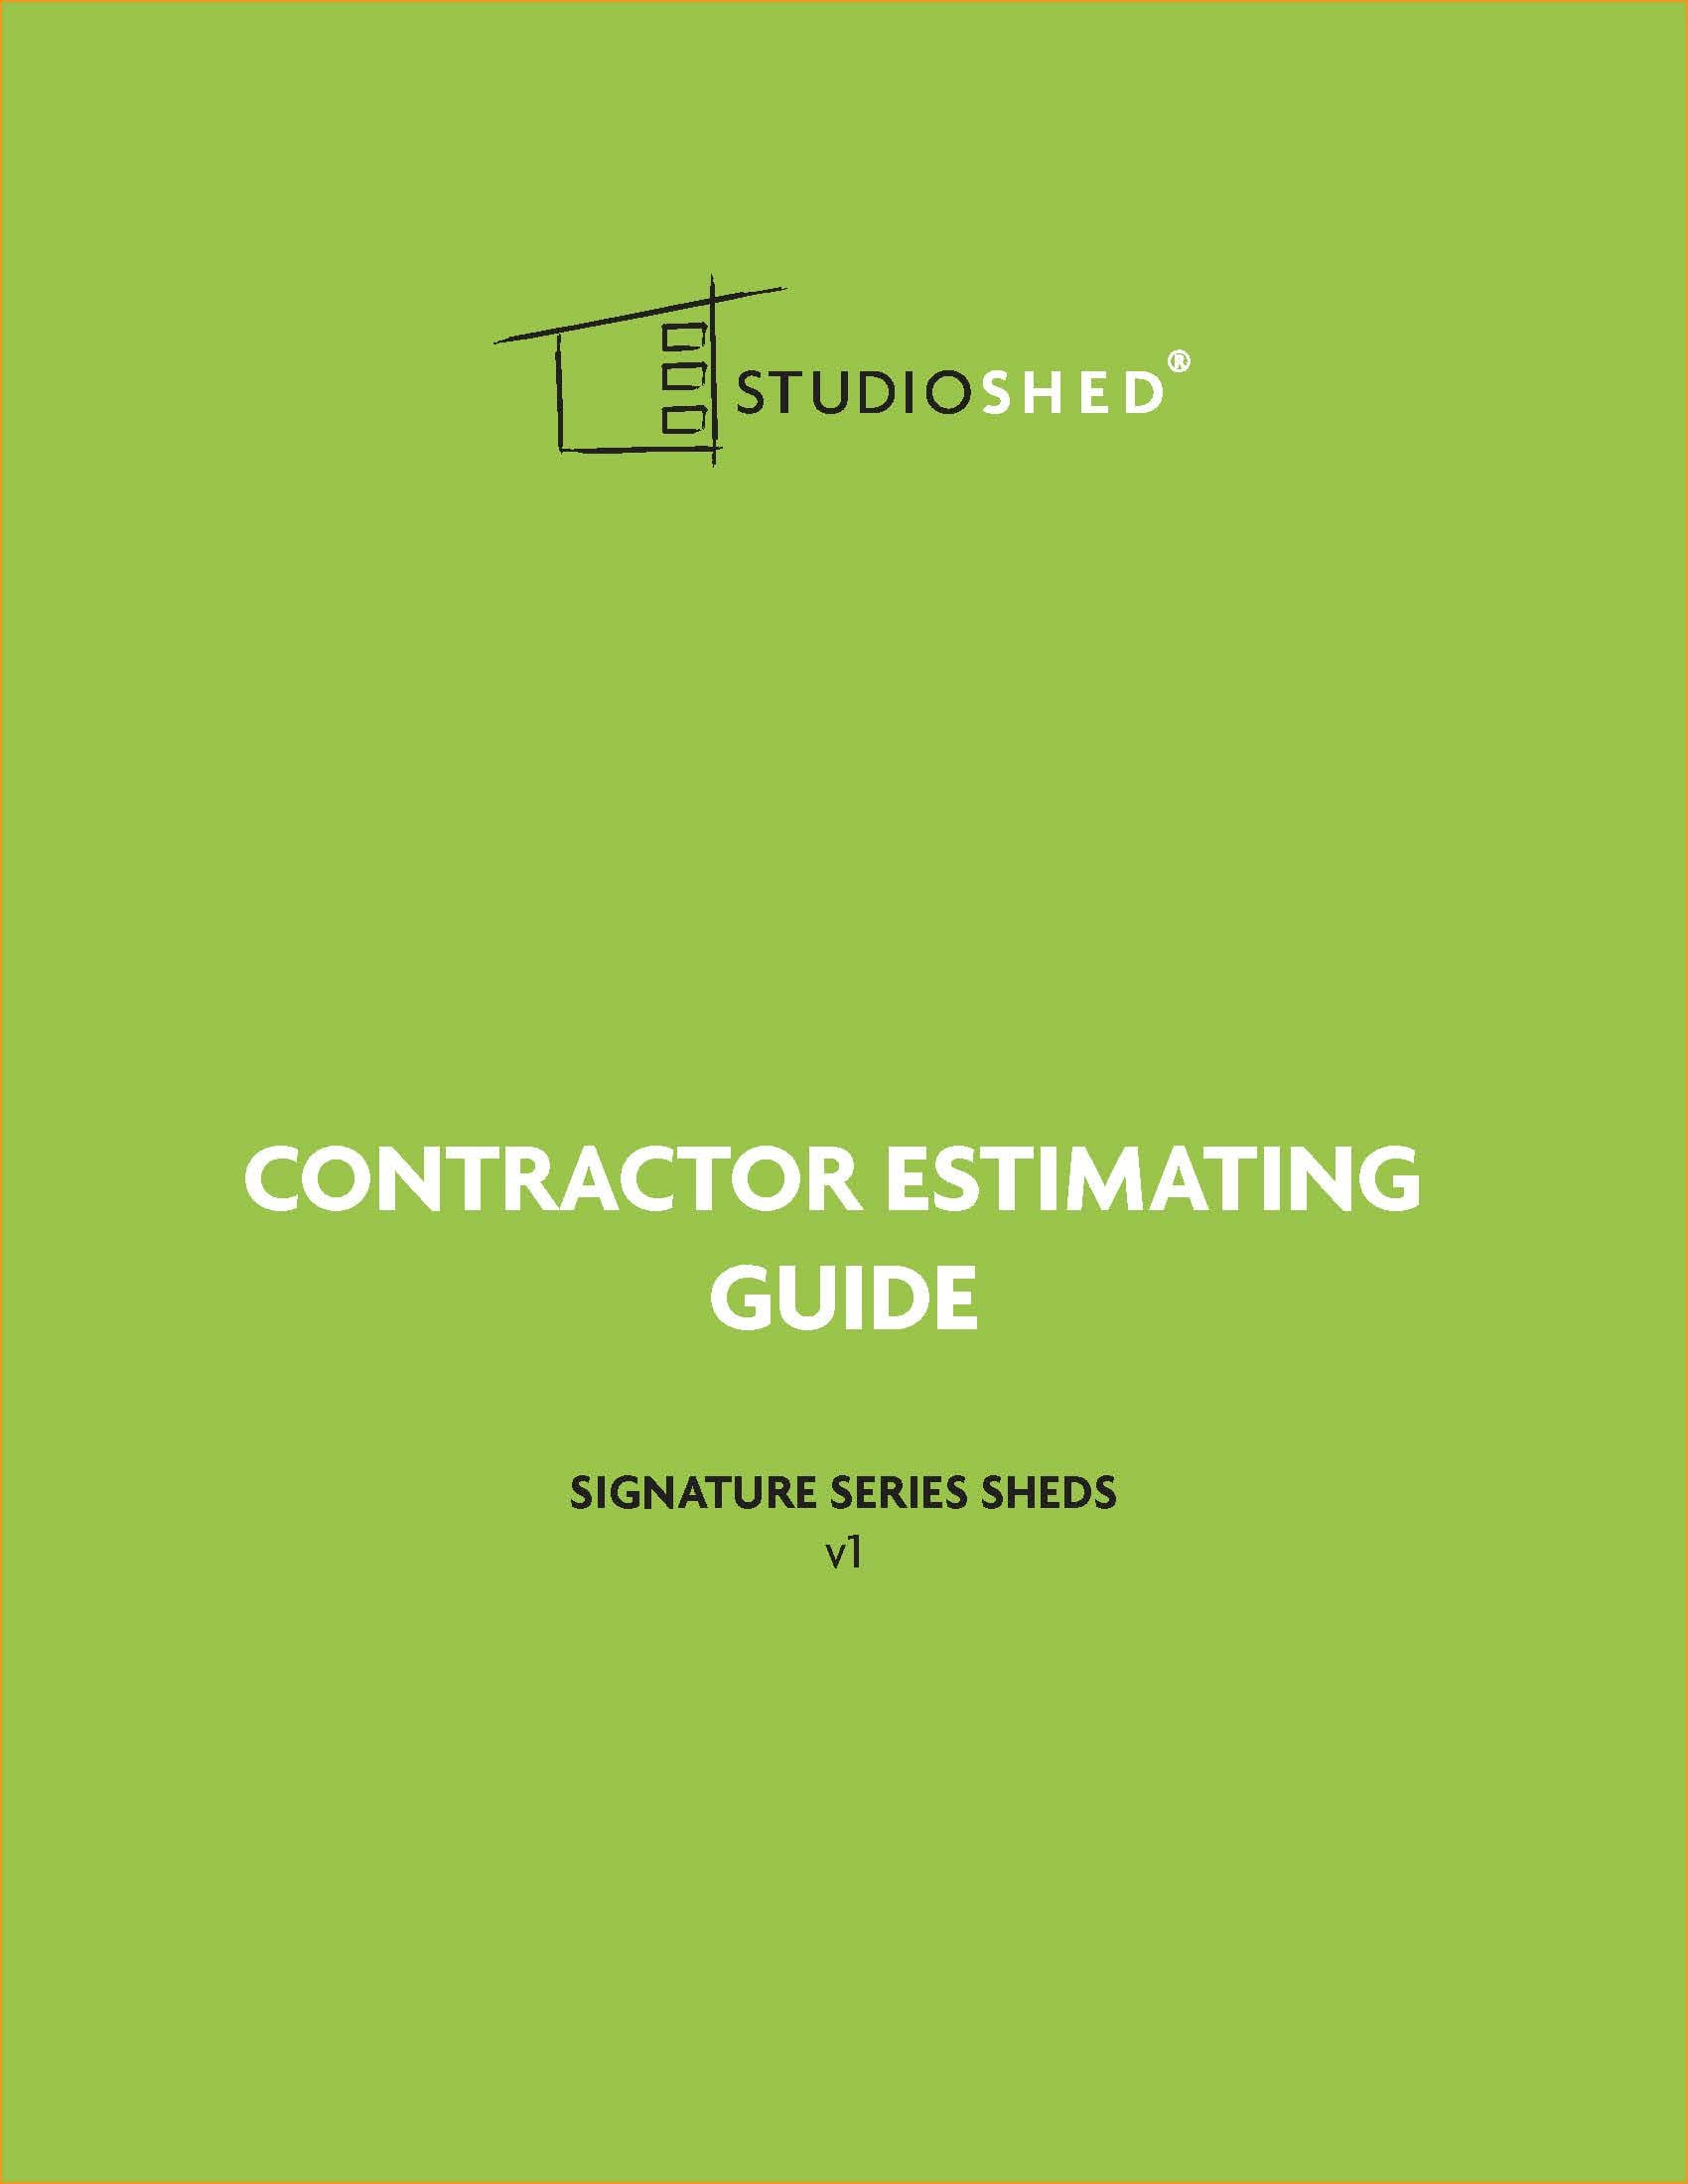 Contractor Estimating Guide